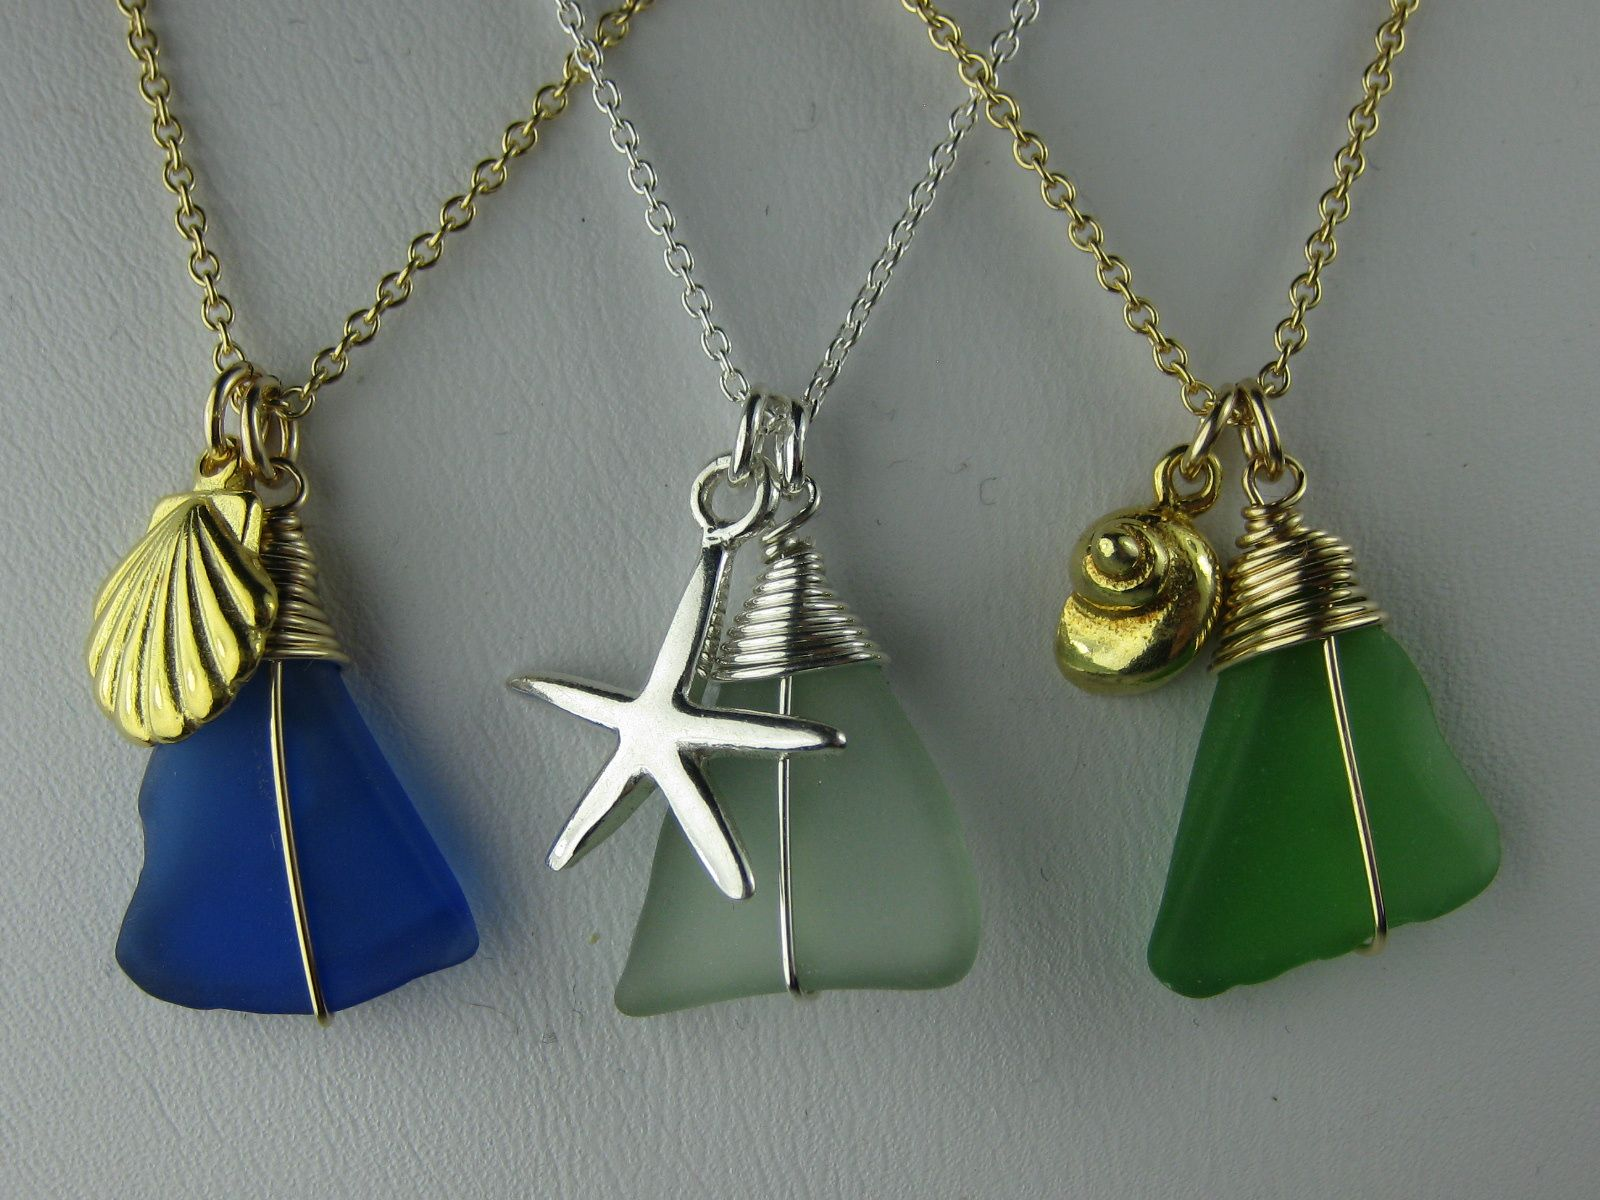 Sea Glass Charm Necklace Jeanne Ruland Jewelry Design Pinterest